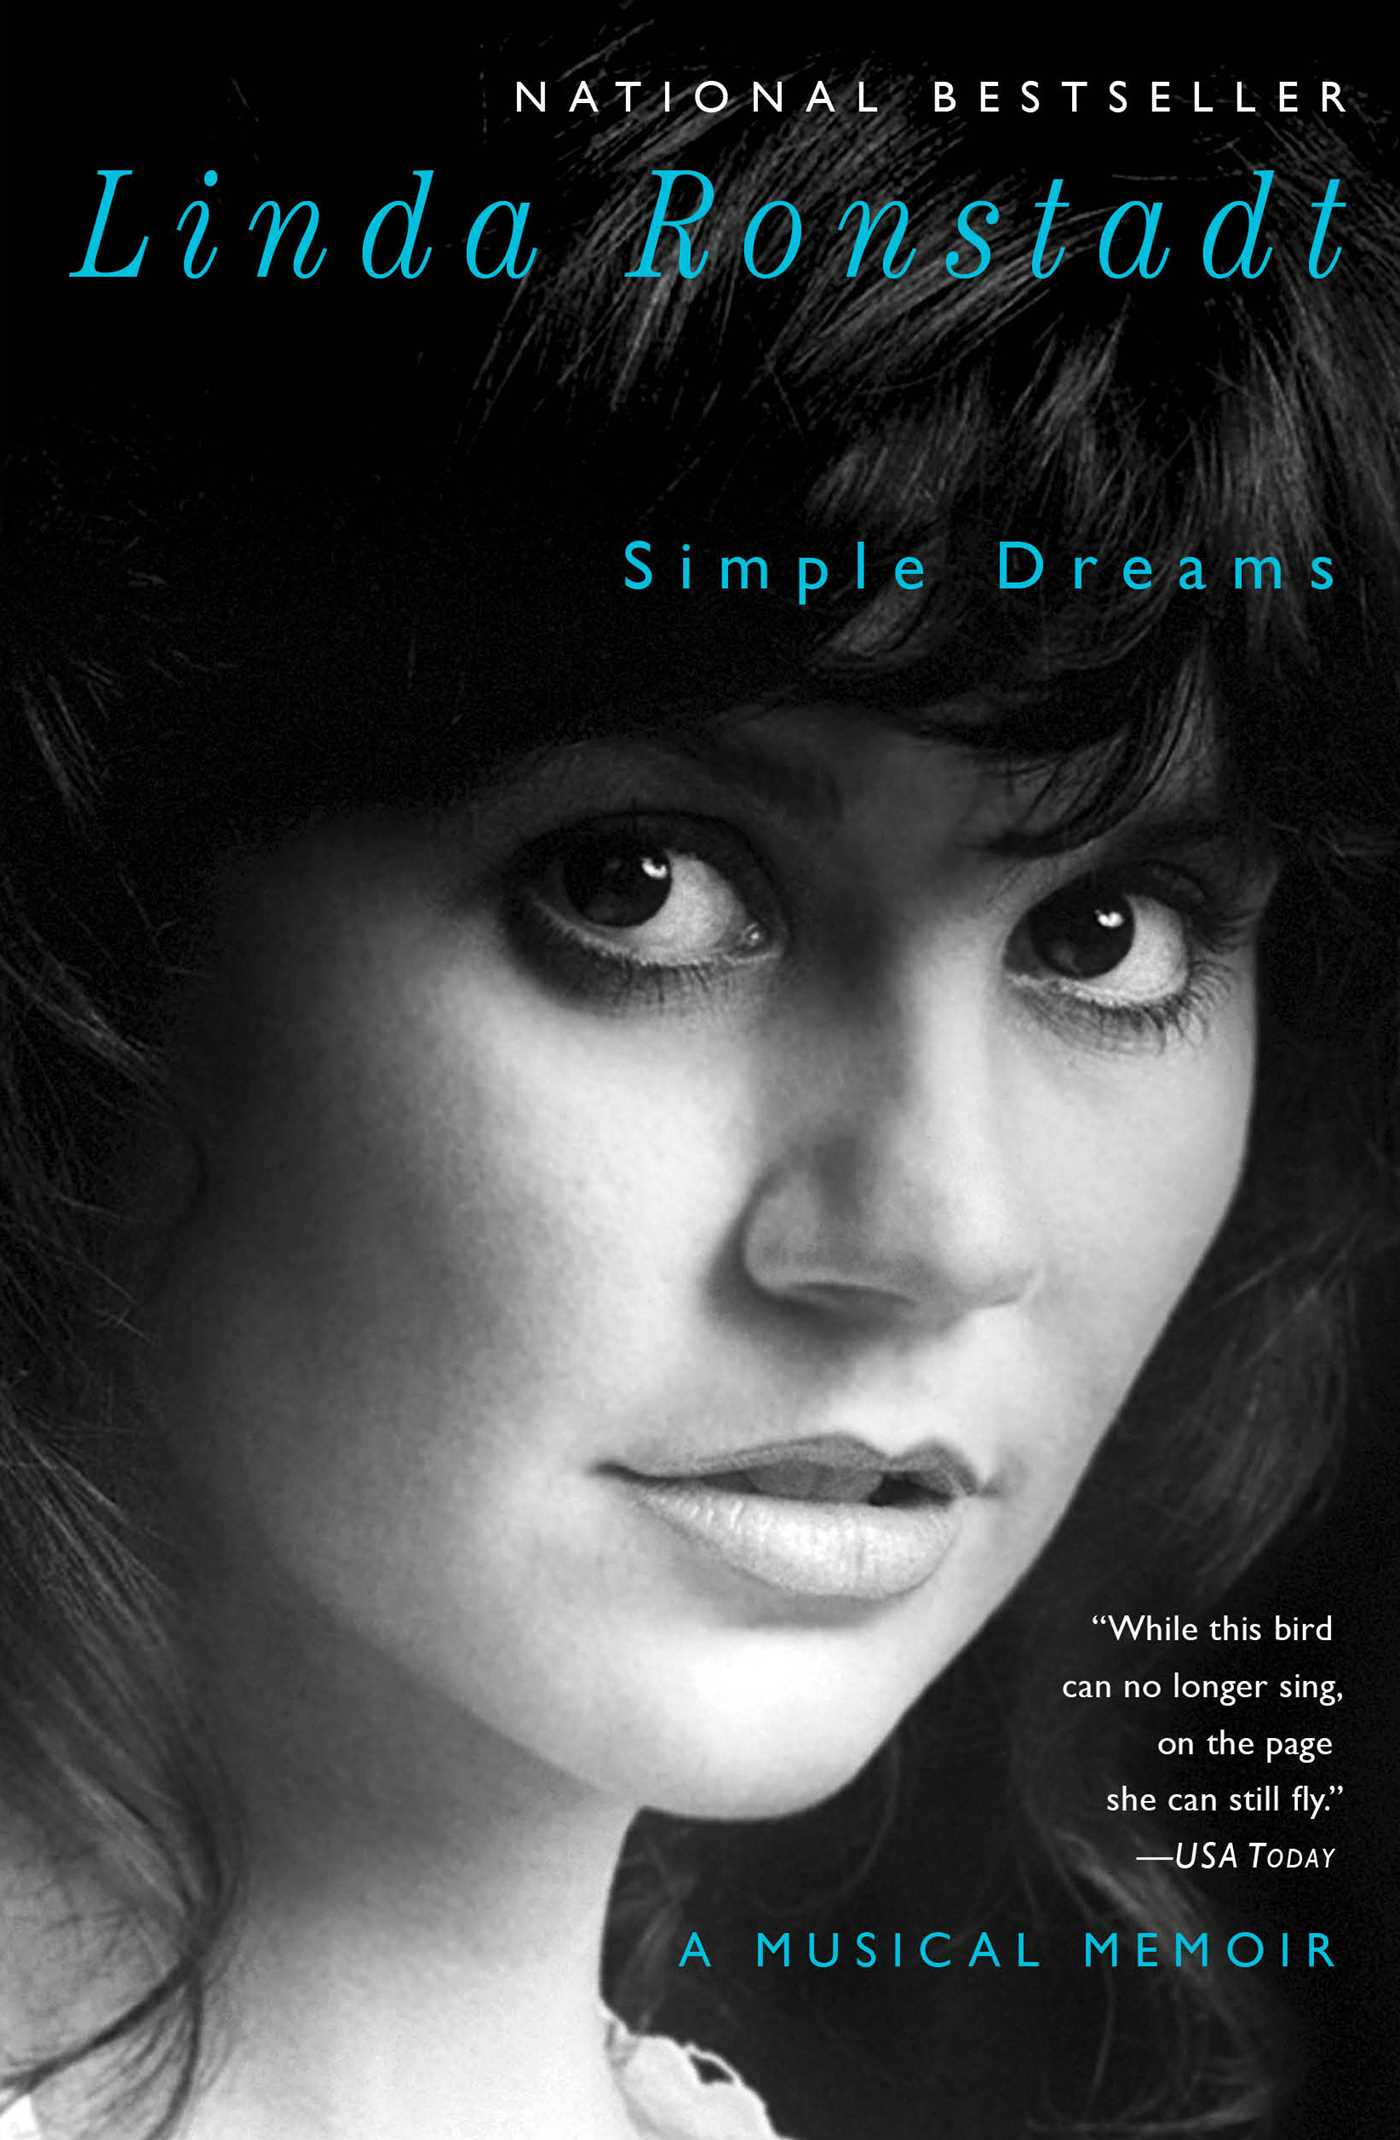 Tucson In The 70s >> Simple Dreams | Book by Linda Ronstadt | Official Publisher Page | Simon & Schuster Canada